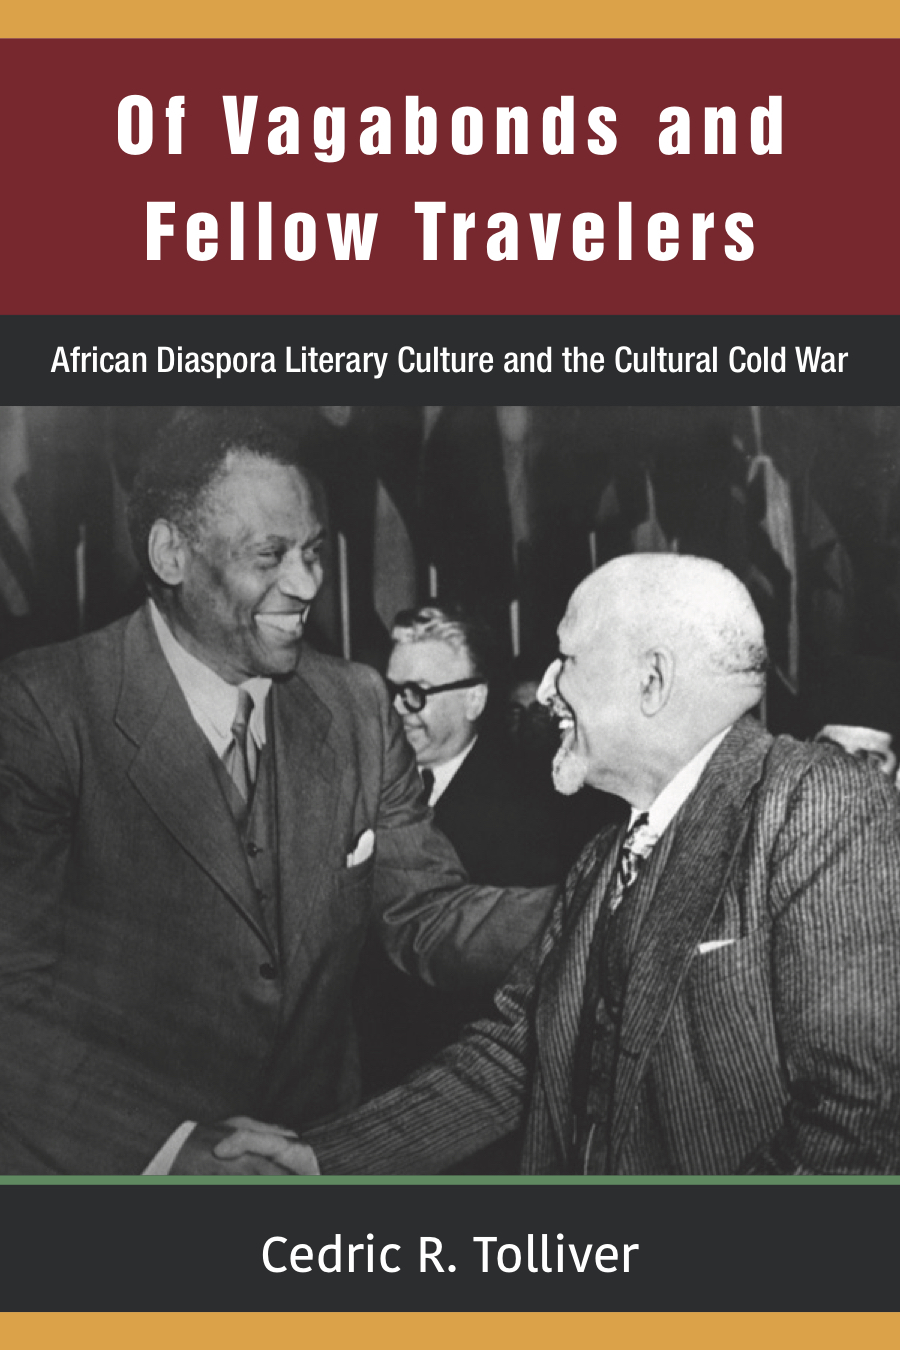 Of Vagabonds and Fellow Travelers by Cedric Tolliver